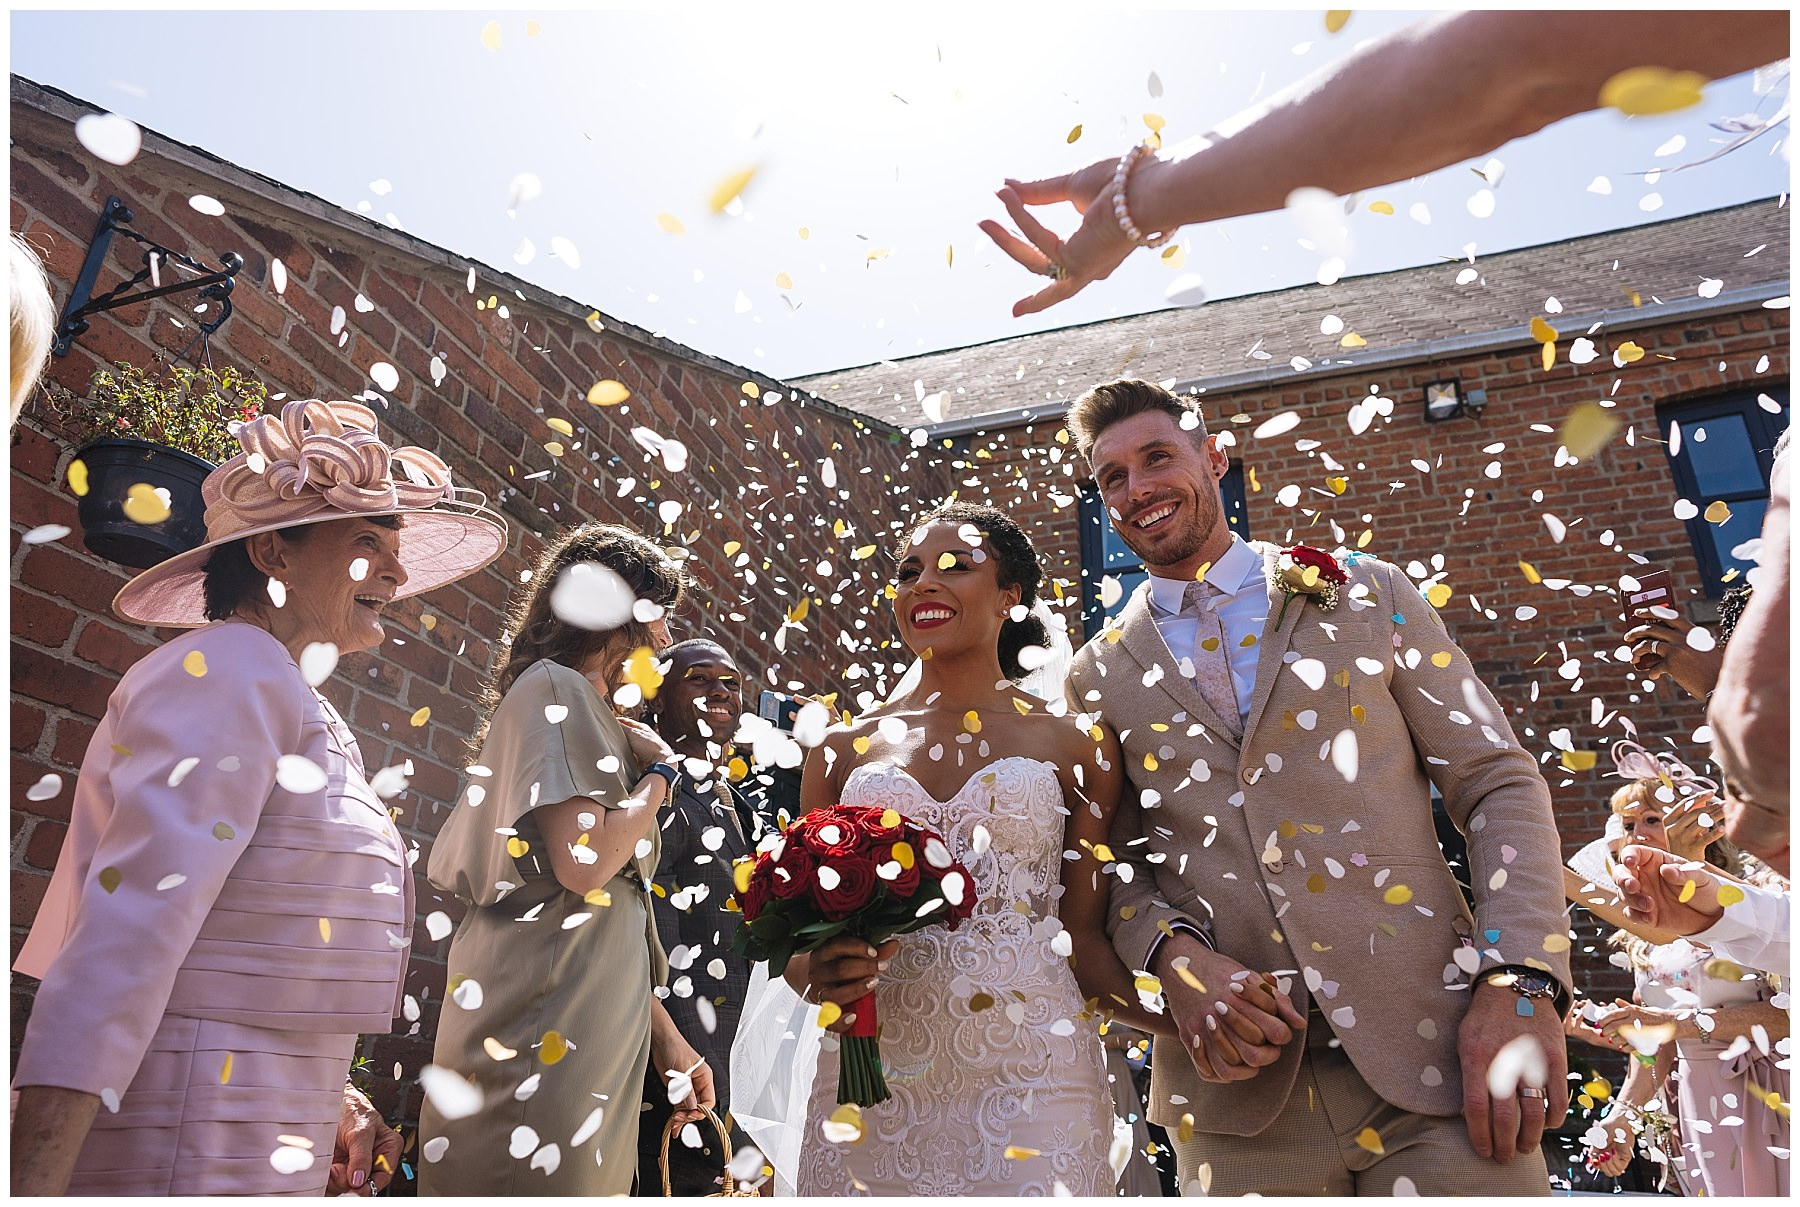 confetti thrown over bride and groom at swancar farm